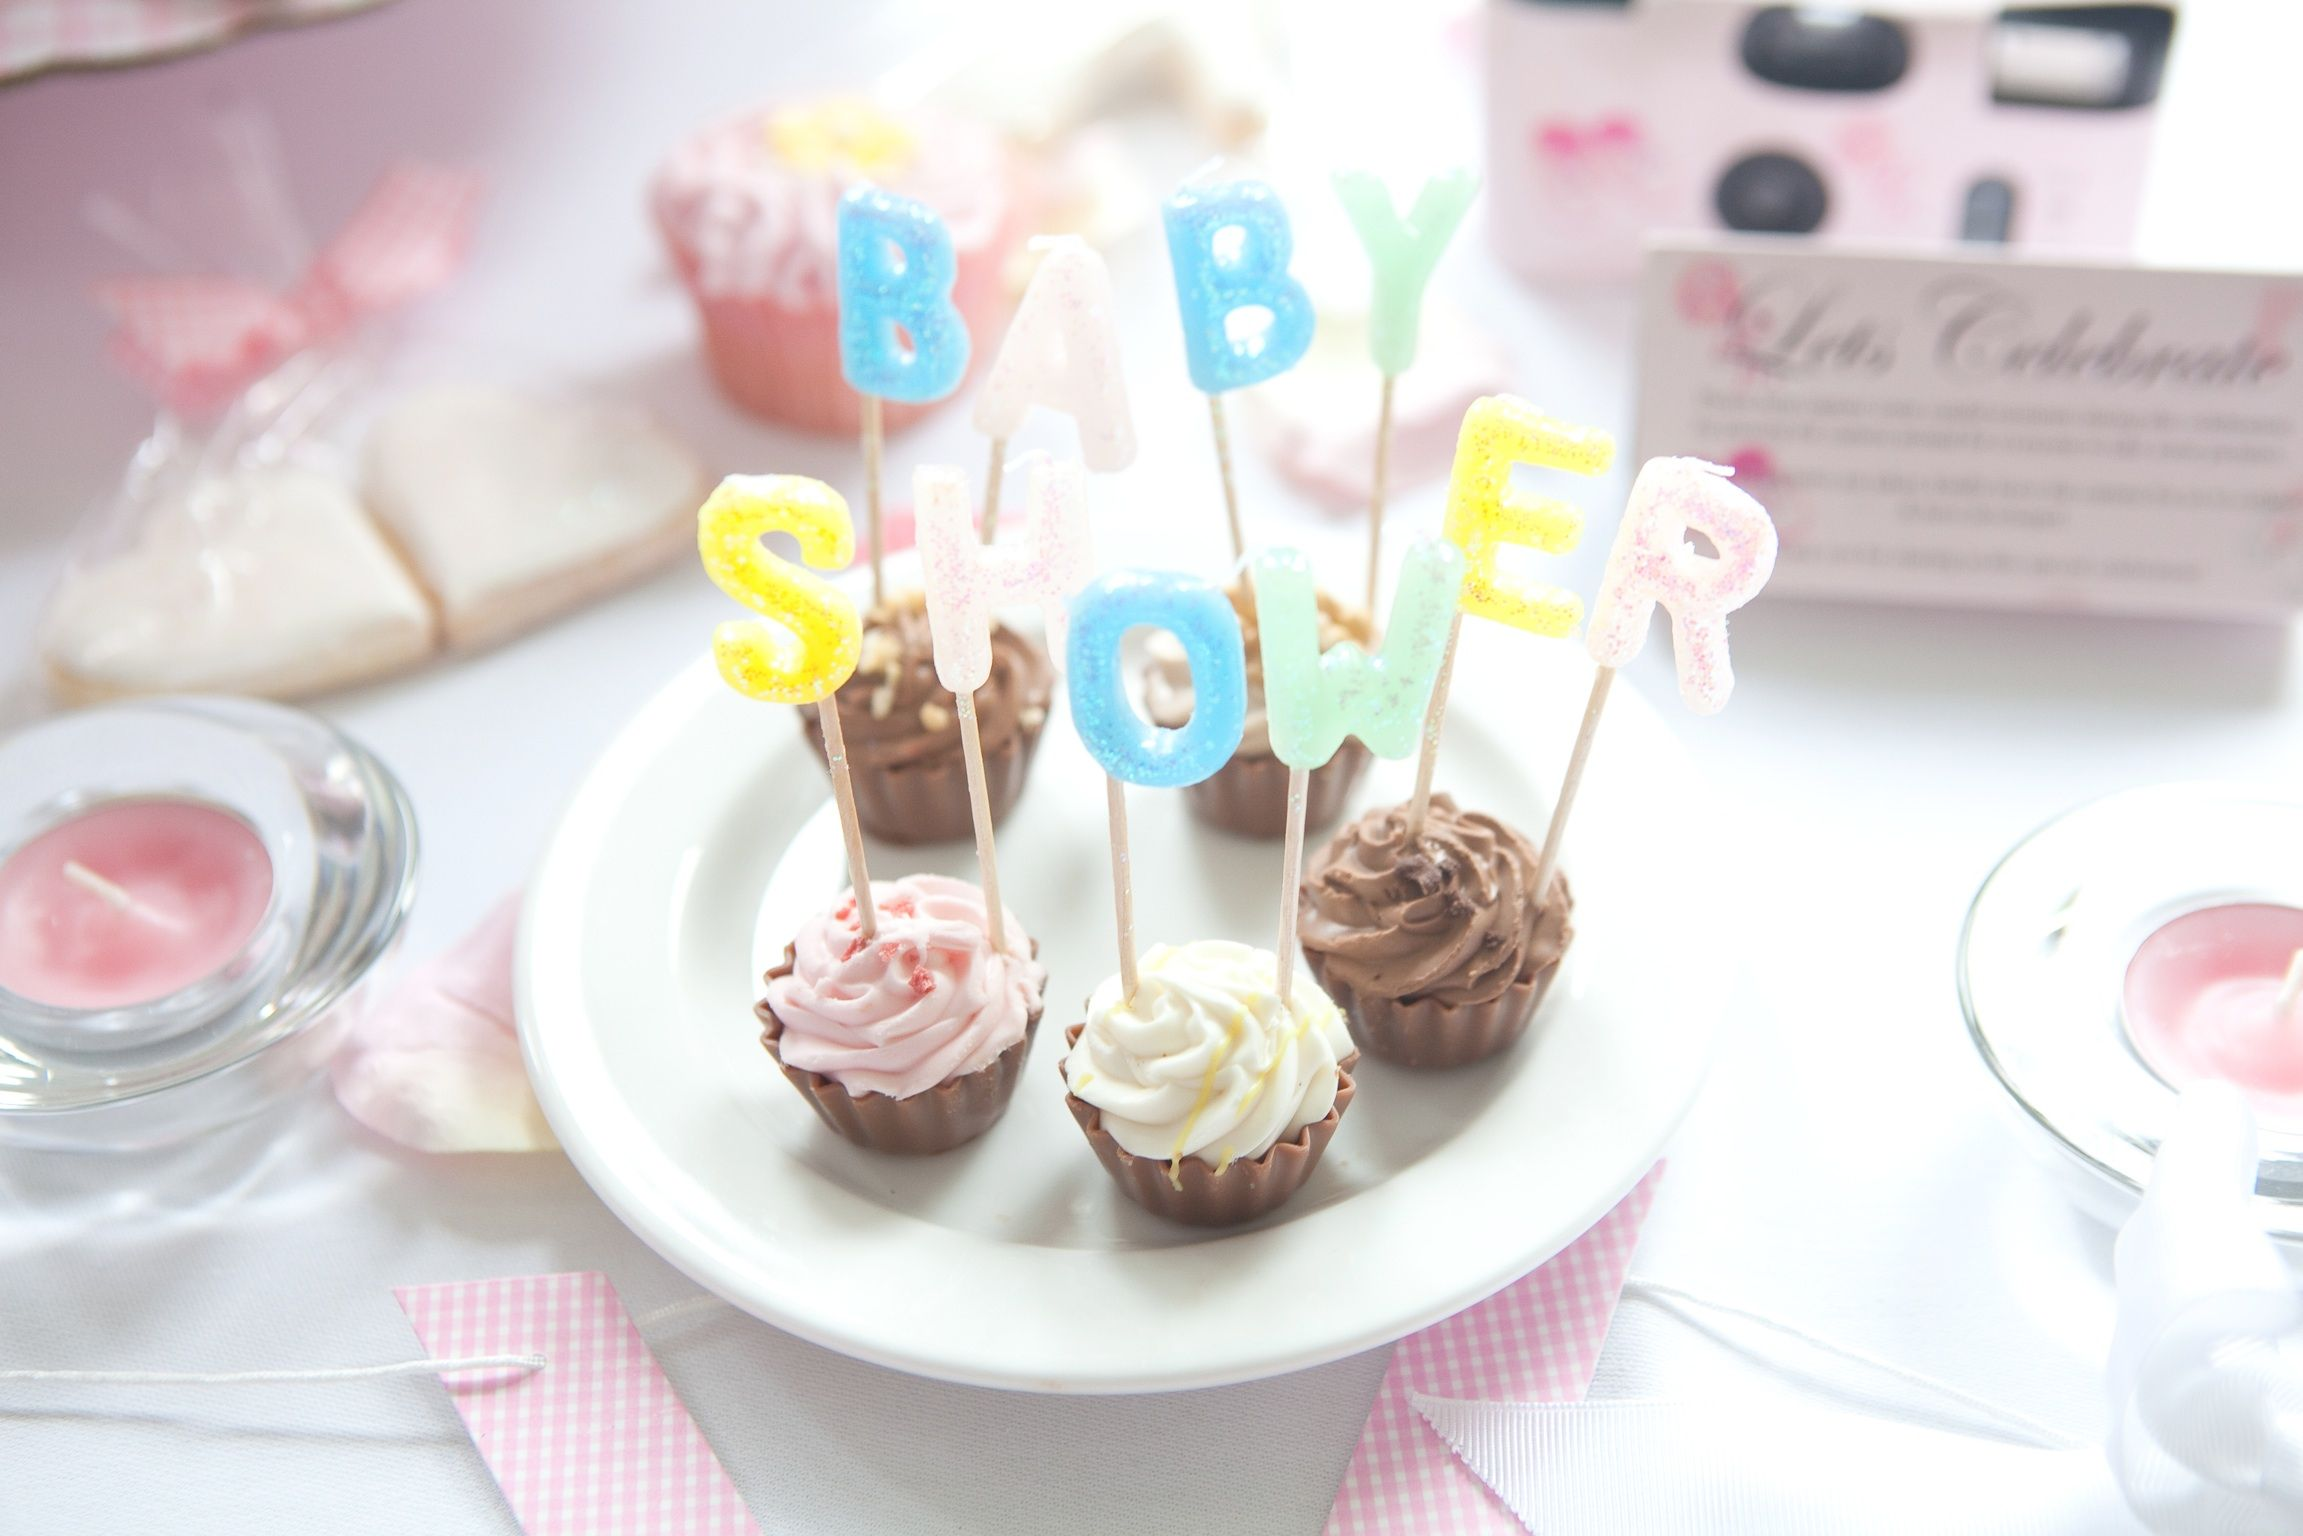 Cute cupcake flavoured chocolates with baby shower candles make a